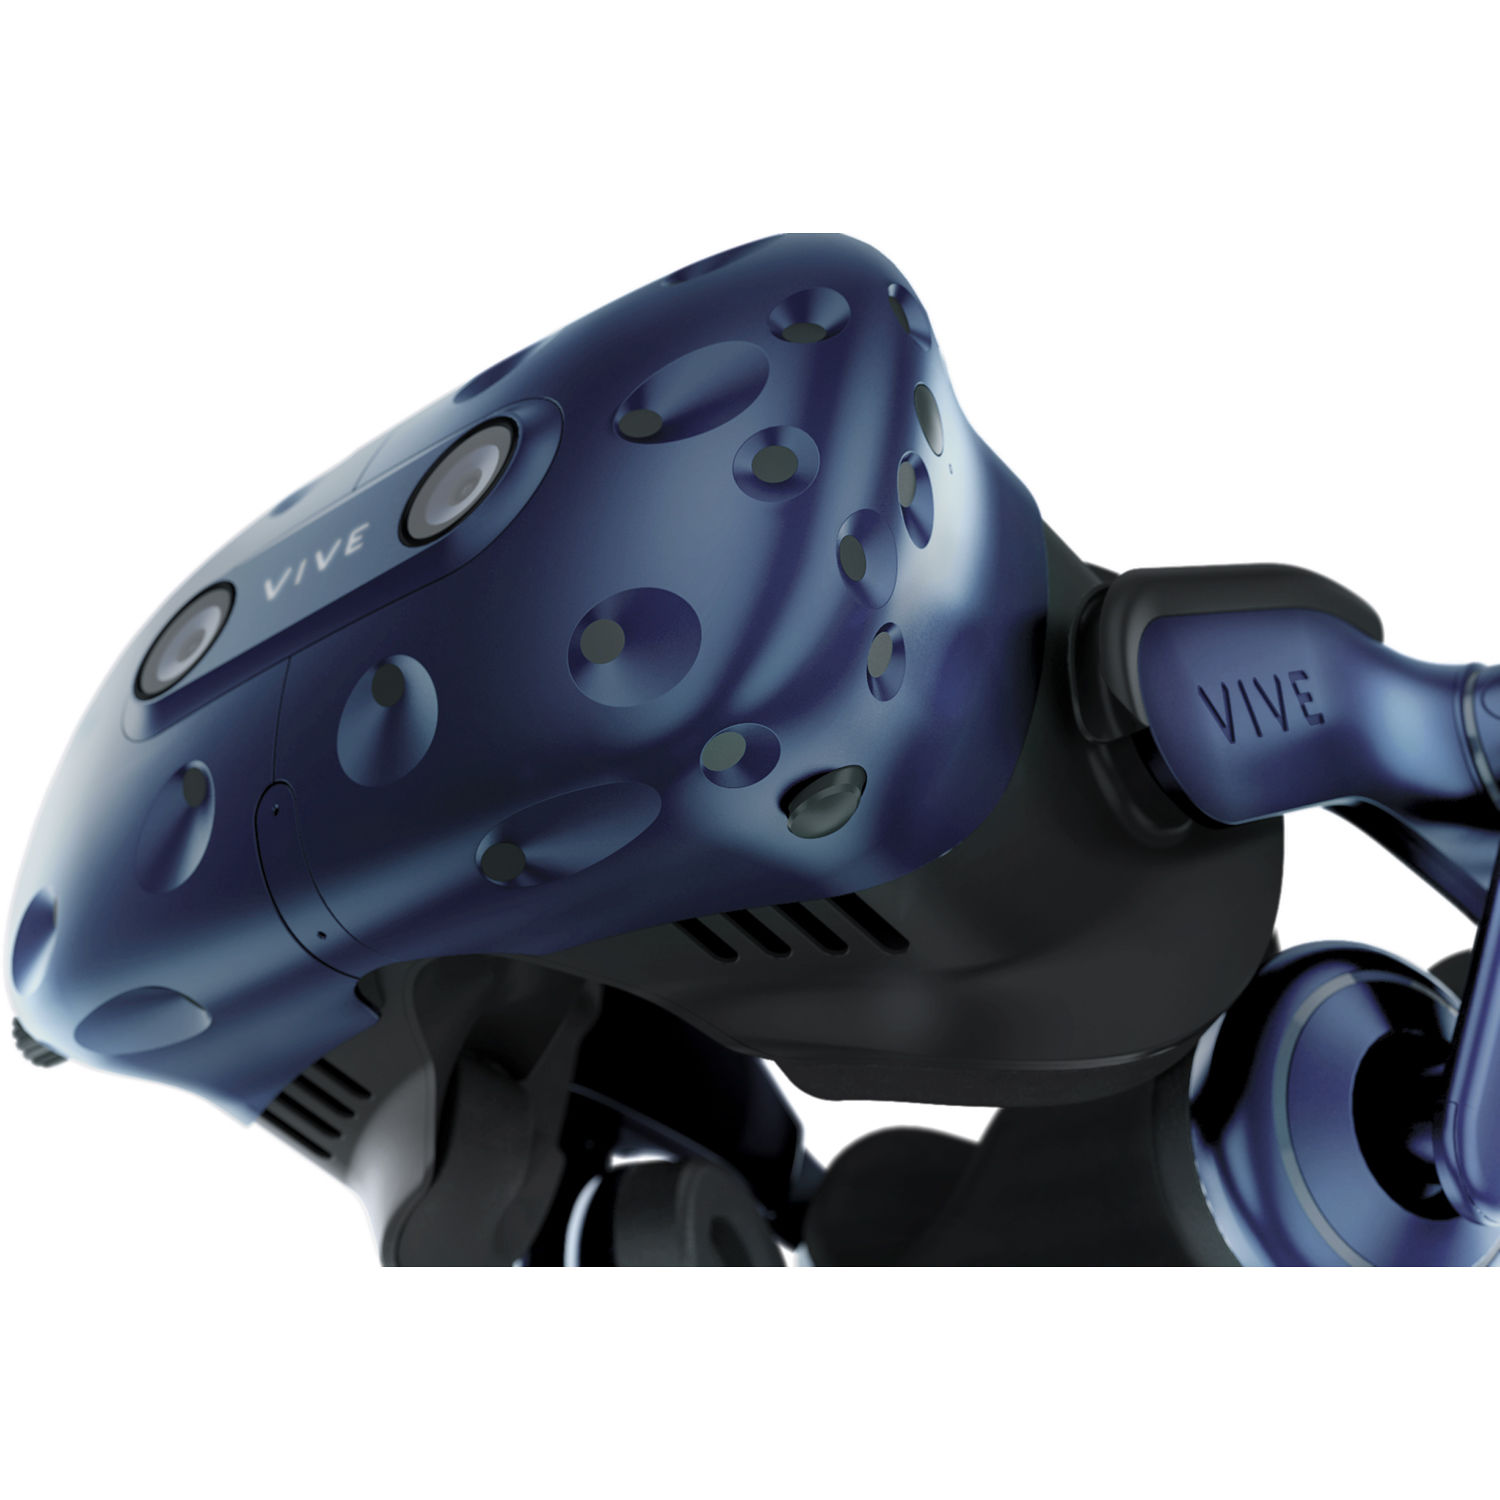 HTC Vive Pro VR Headset Kit with Two Vive Controllers & Two Base Stations